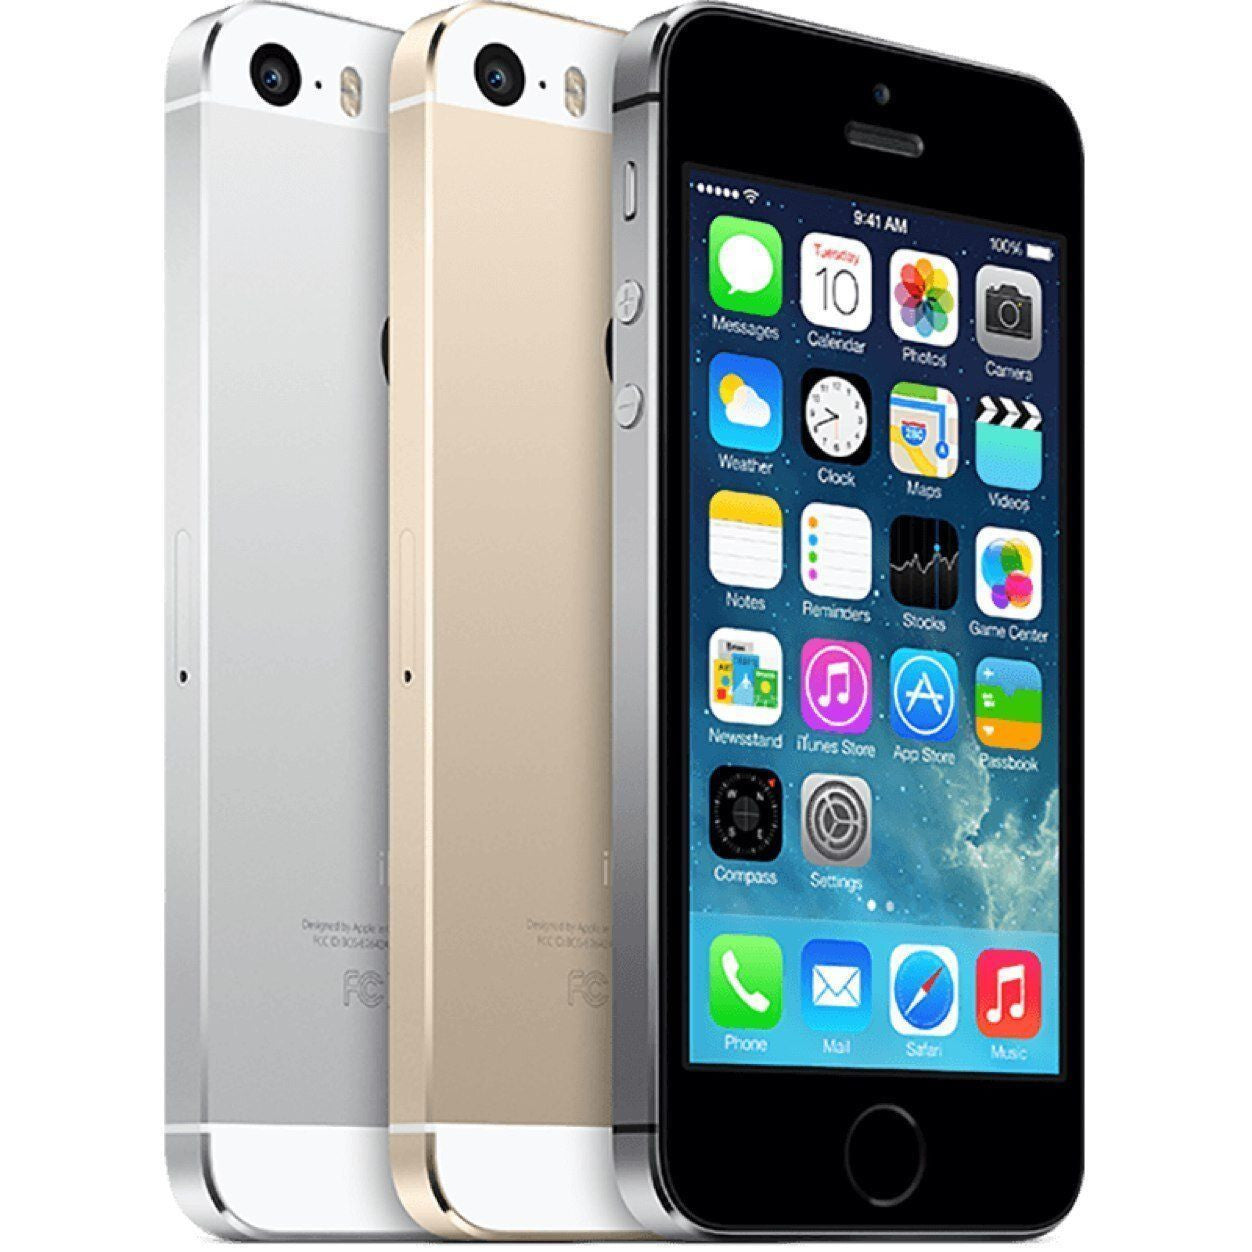 Apple iPhone 5S Factory Unlocked Cellphone - 16GB, 32GB - Gray, Silver, Gold - Grade A